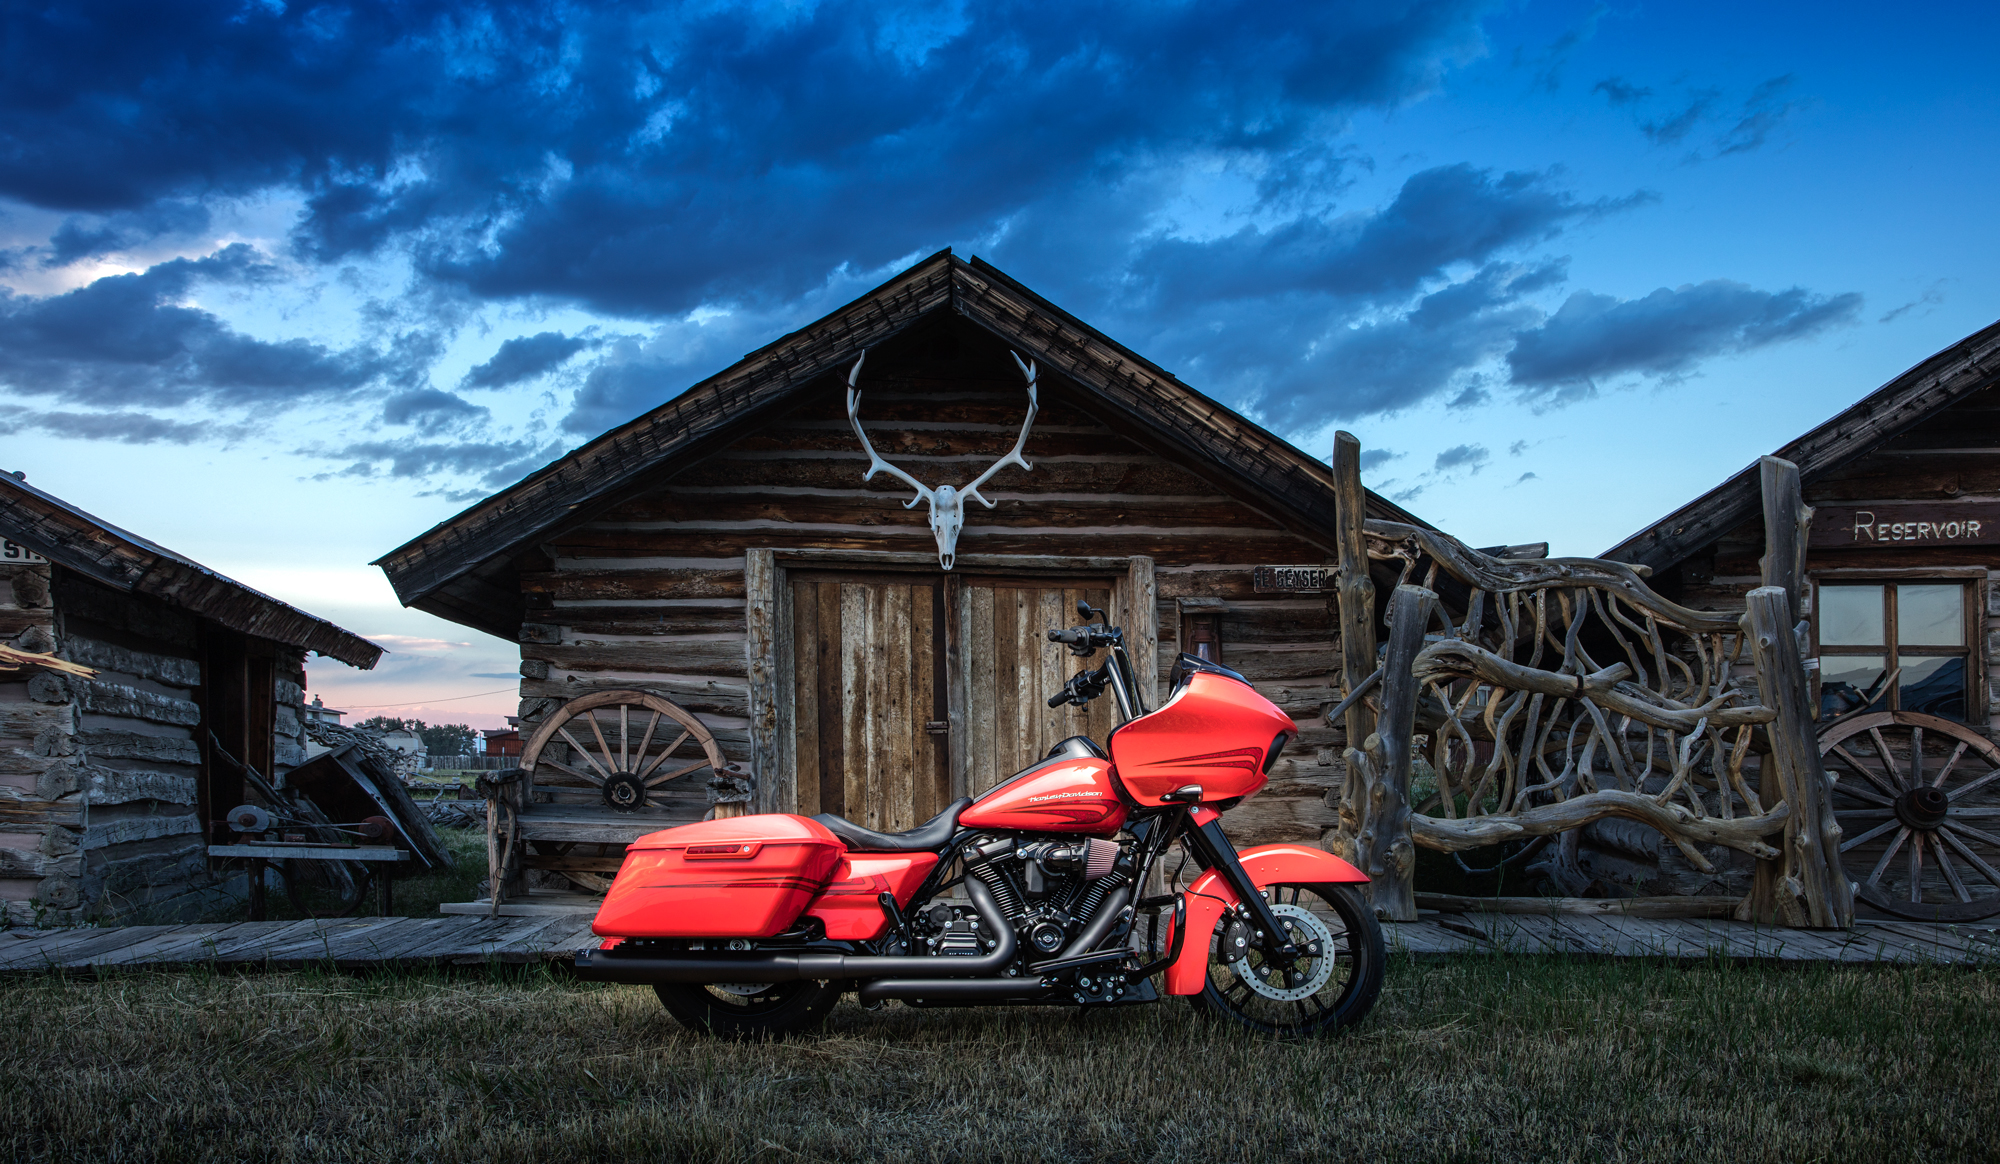 Yellowstone-Harley-34